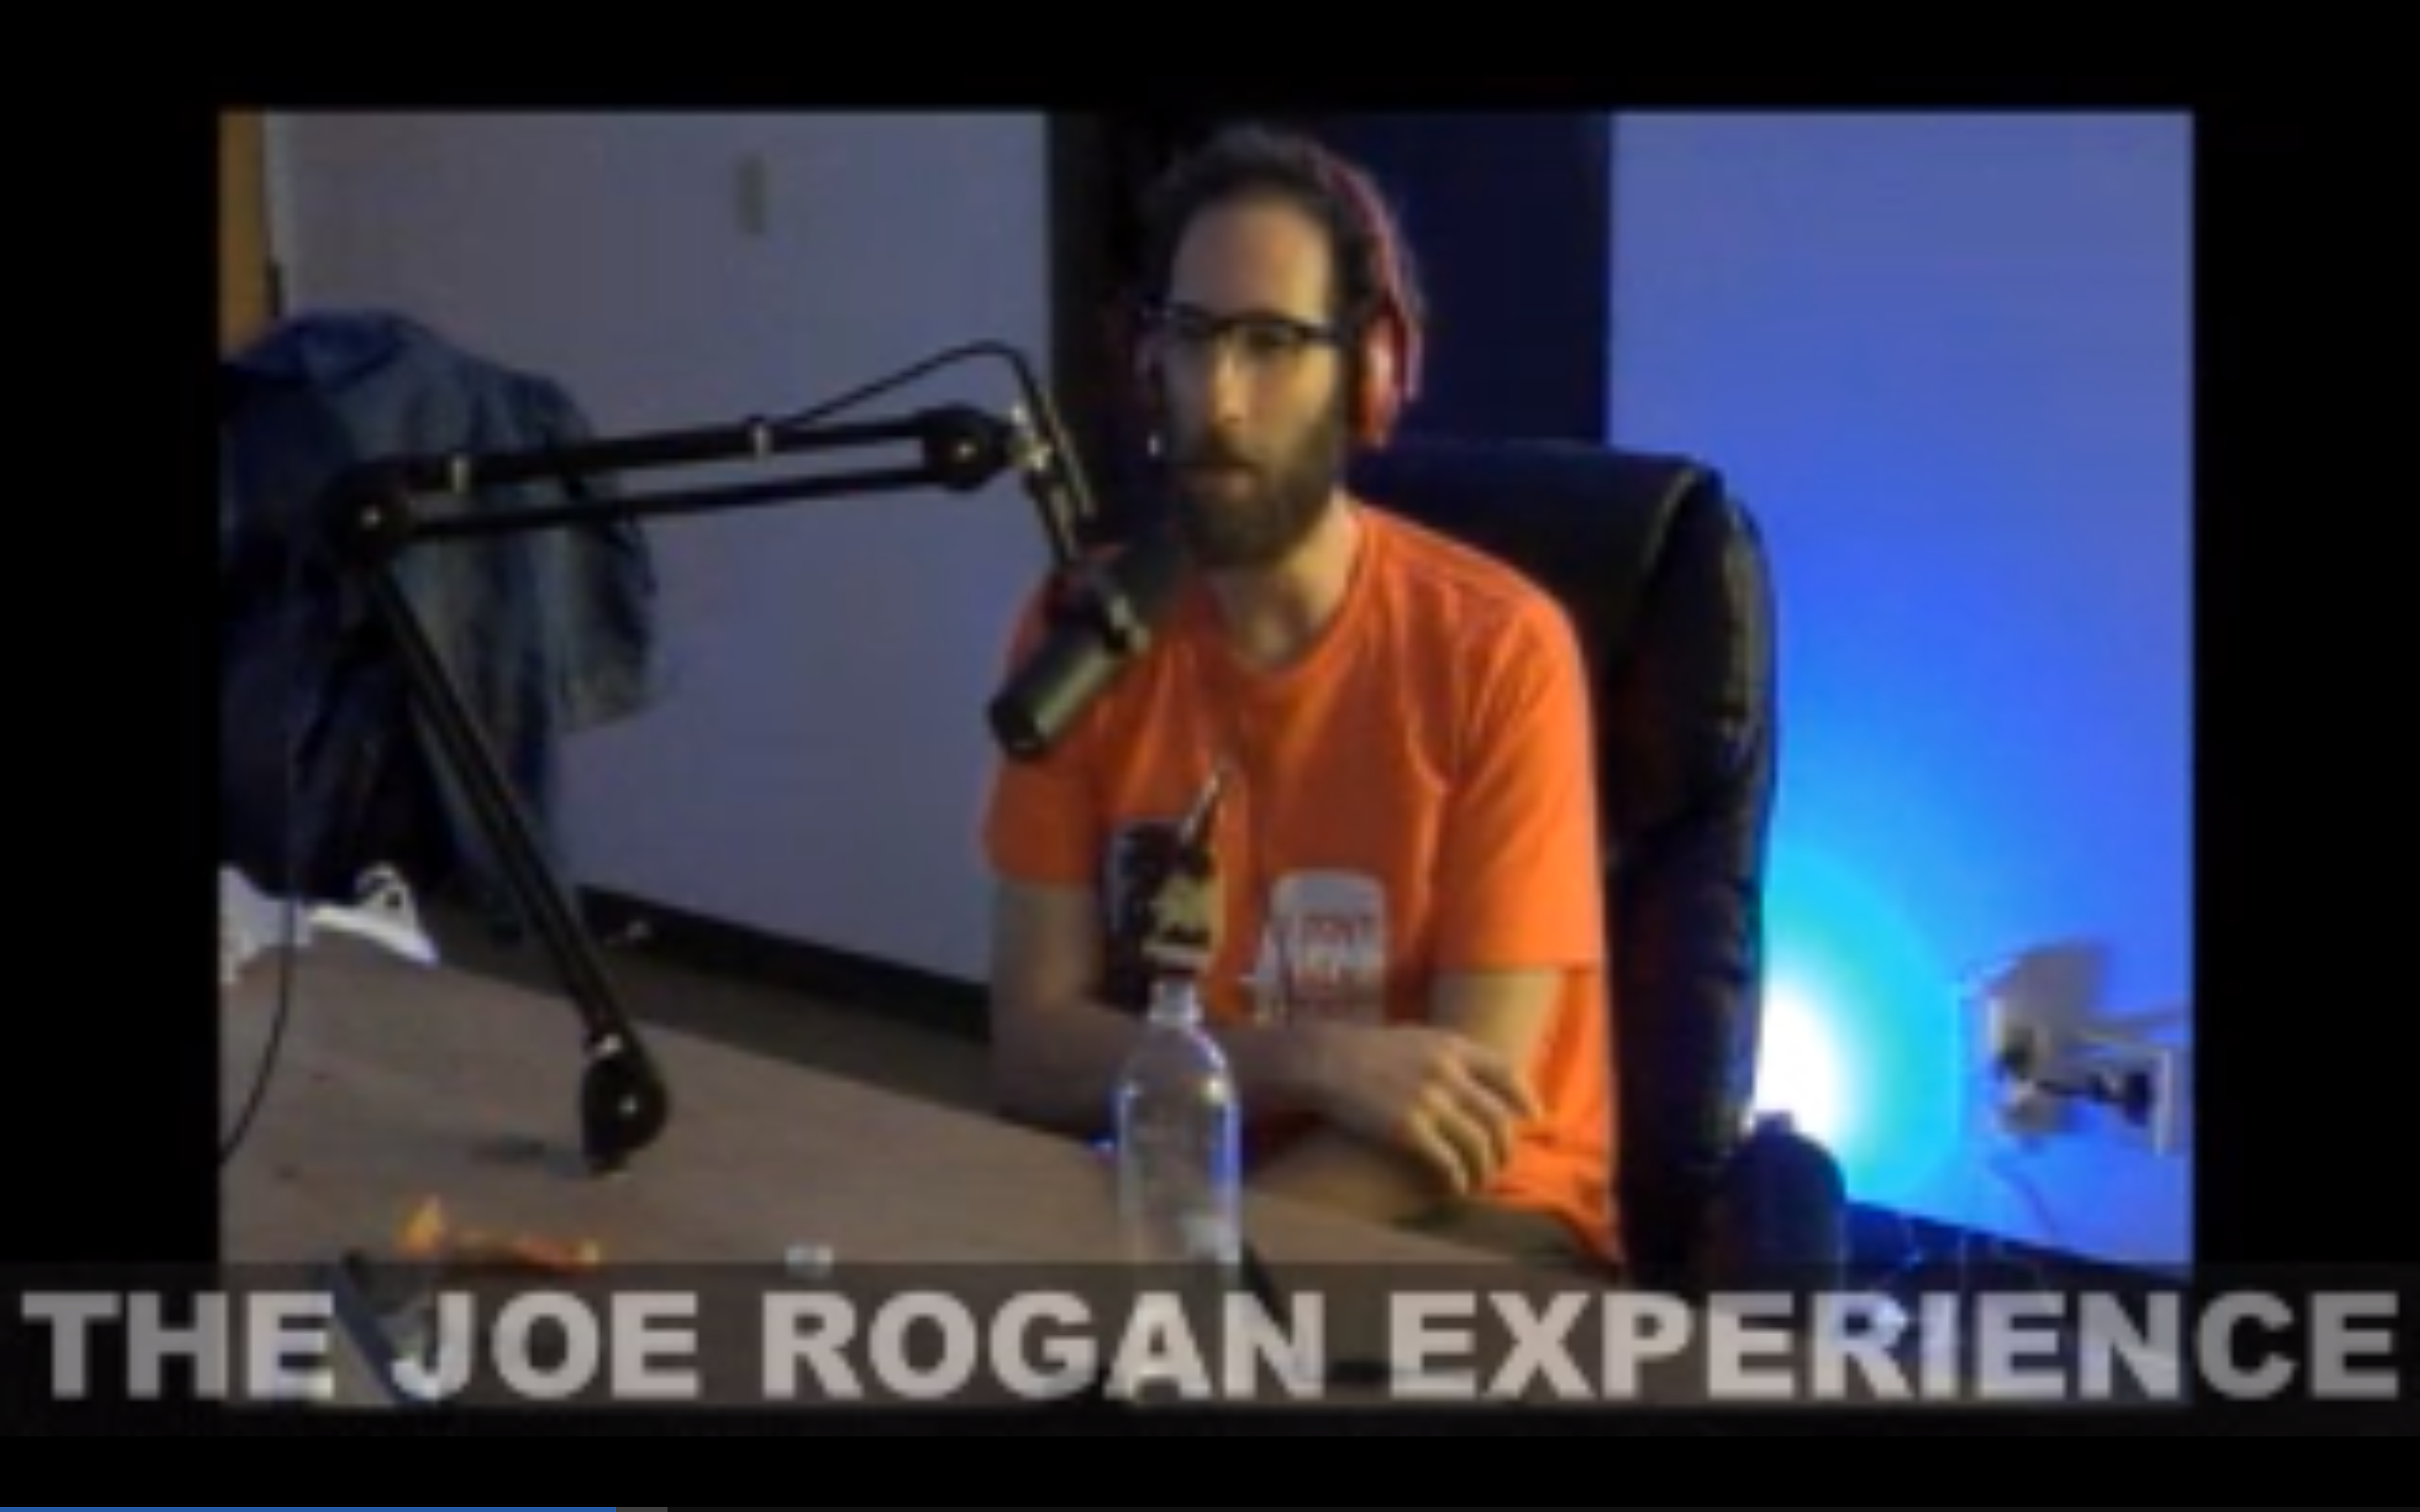 The Joe Rogan Experience JRE #294 - Ari Shaffir, Brian Redban